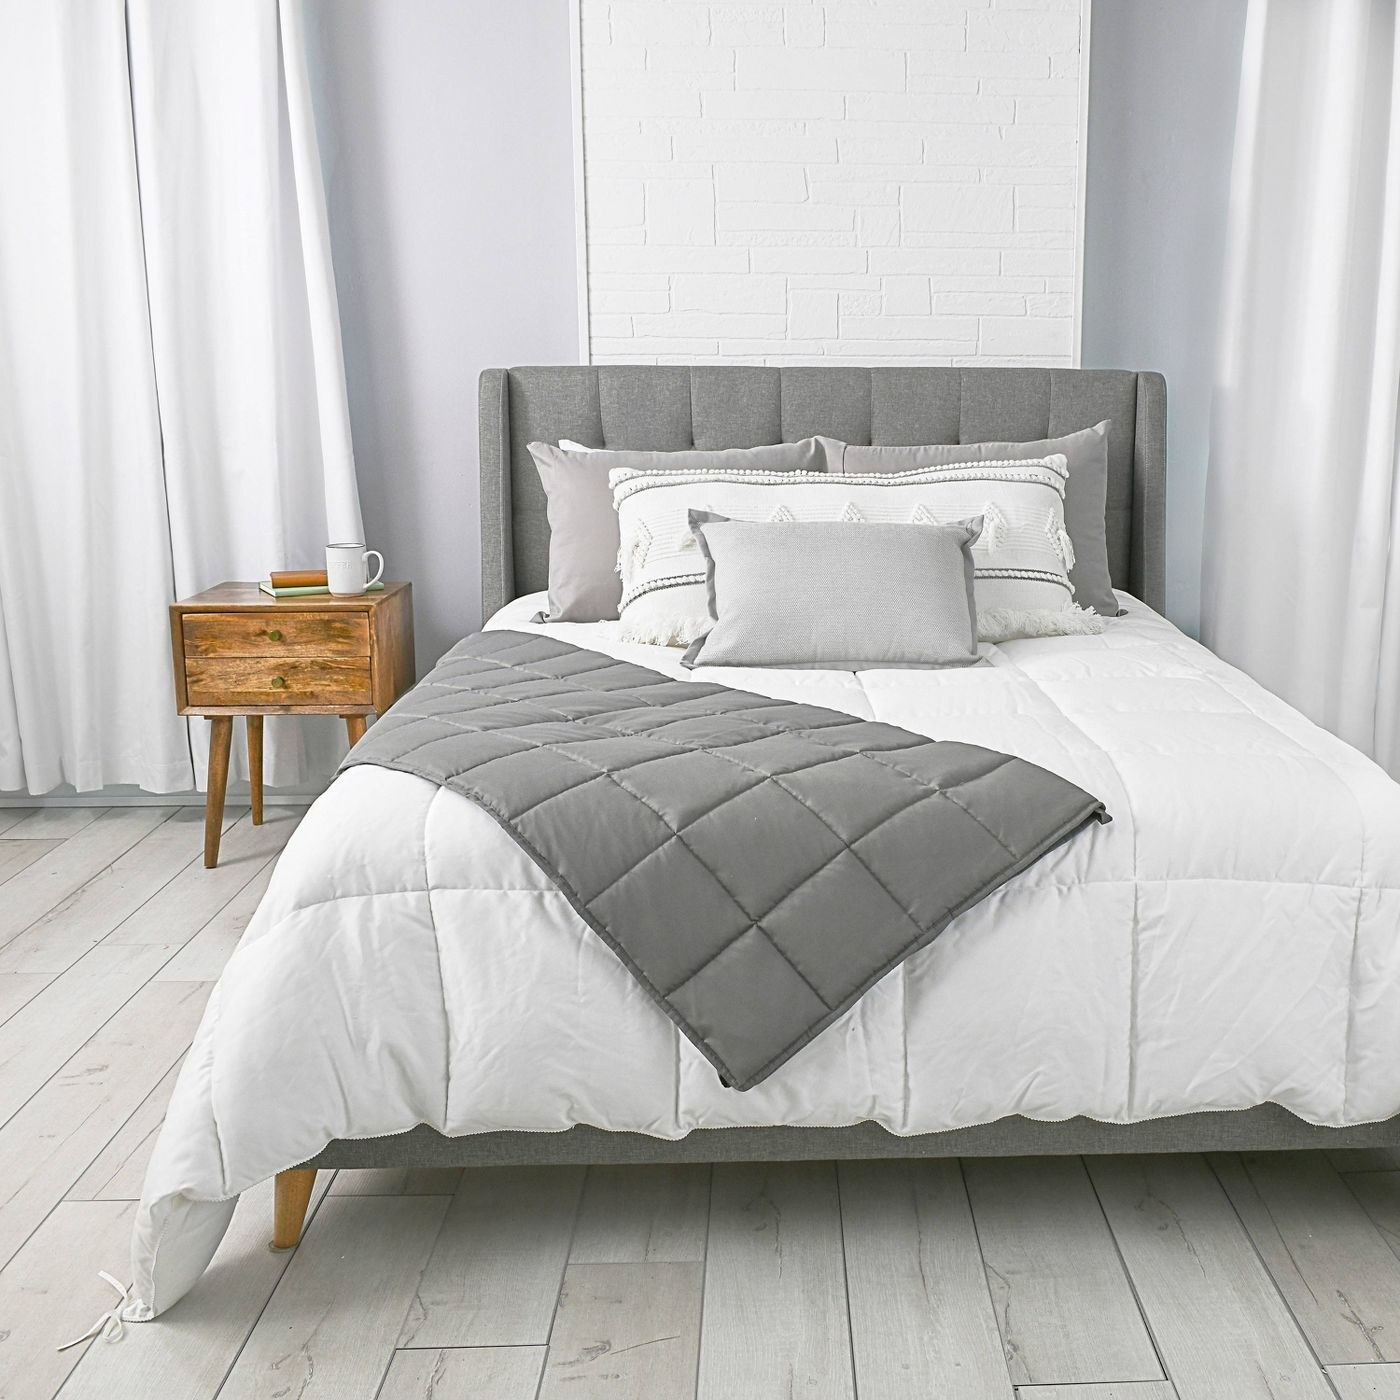 The gray weighted blanket